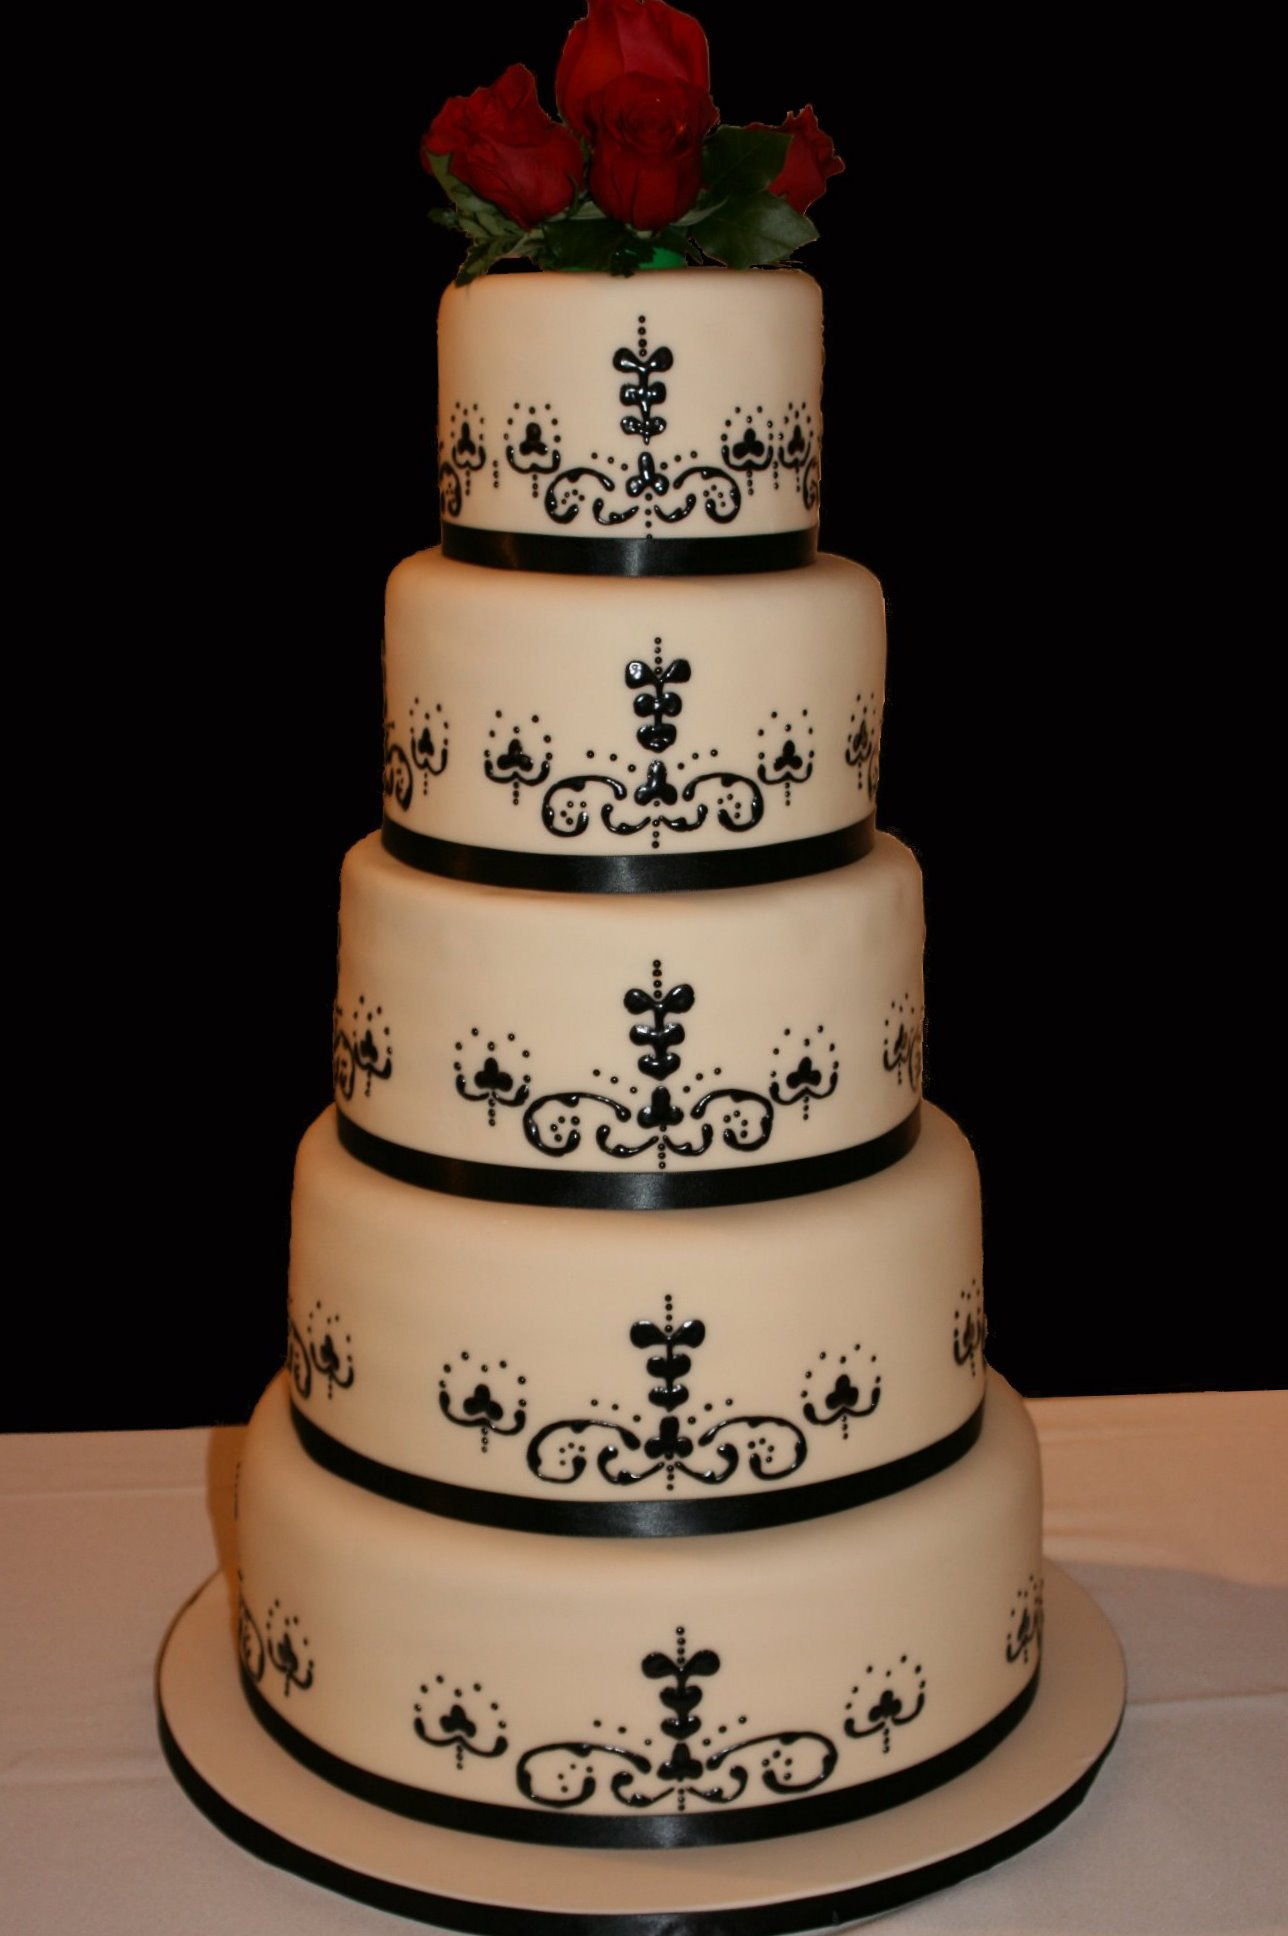 Cakes, ivory, black, cake, Wedding, Fondant, Creative cakes and cookies, Piping